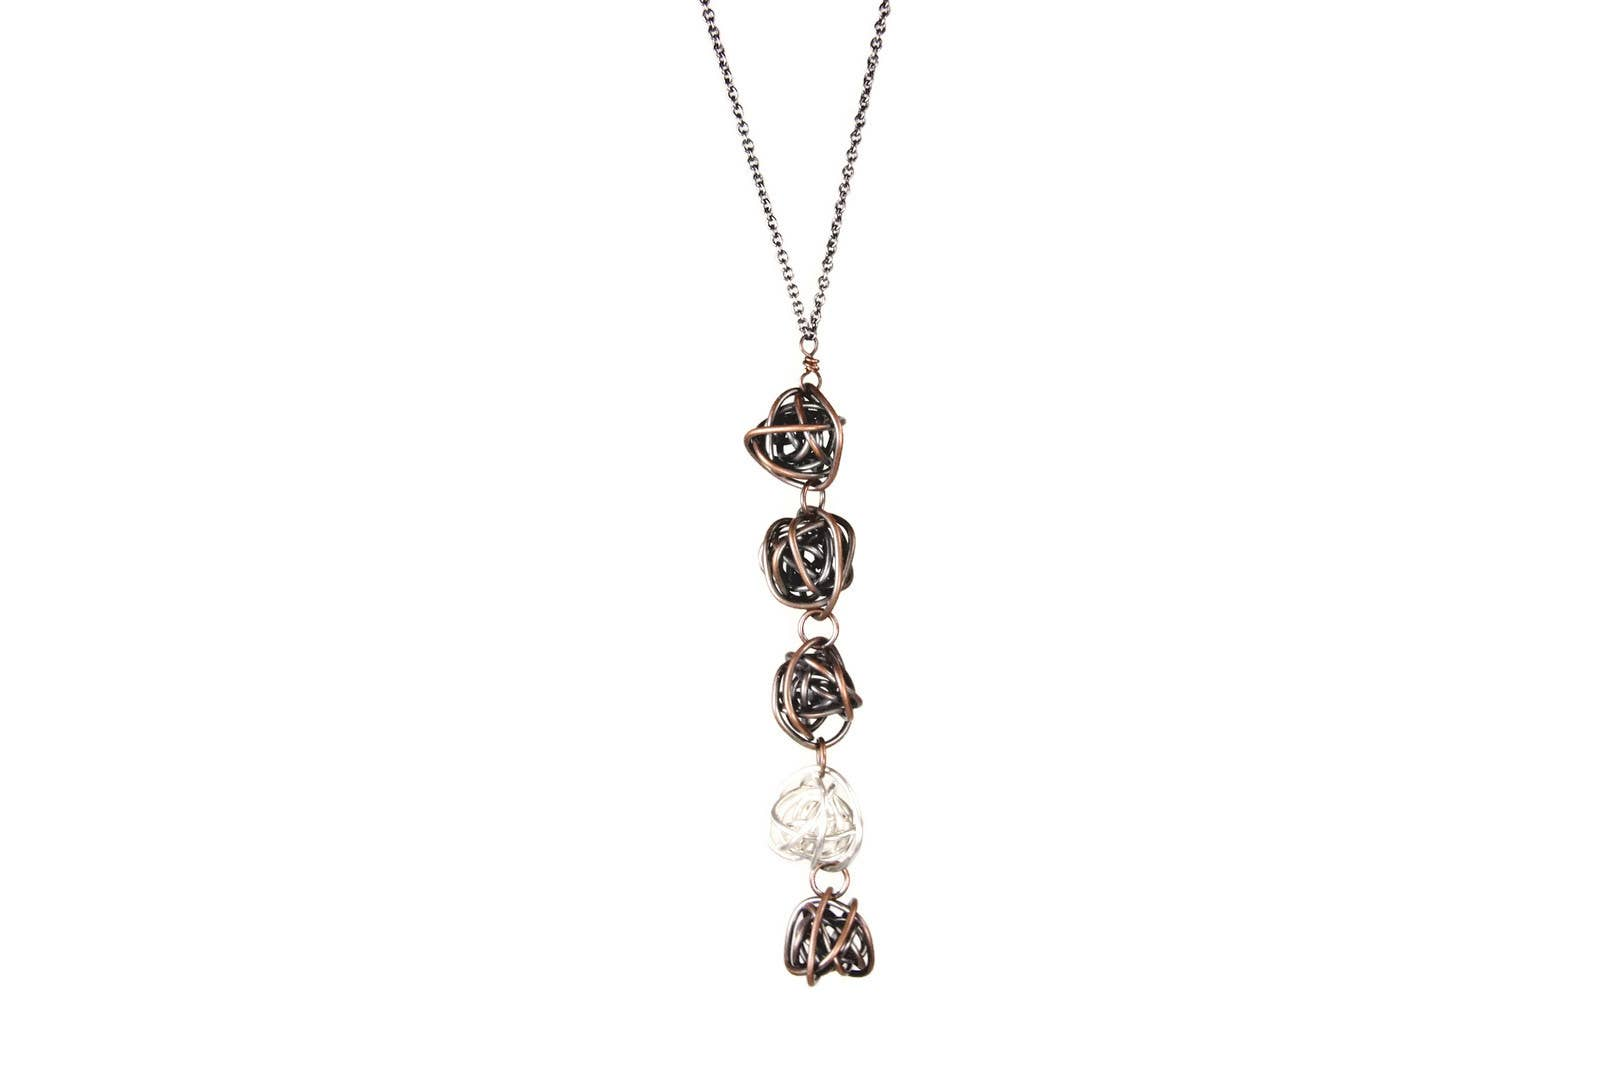 choose Asymmetric silver chain with green water silver and mirror beads for sunglasses or masks